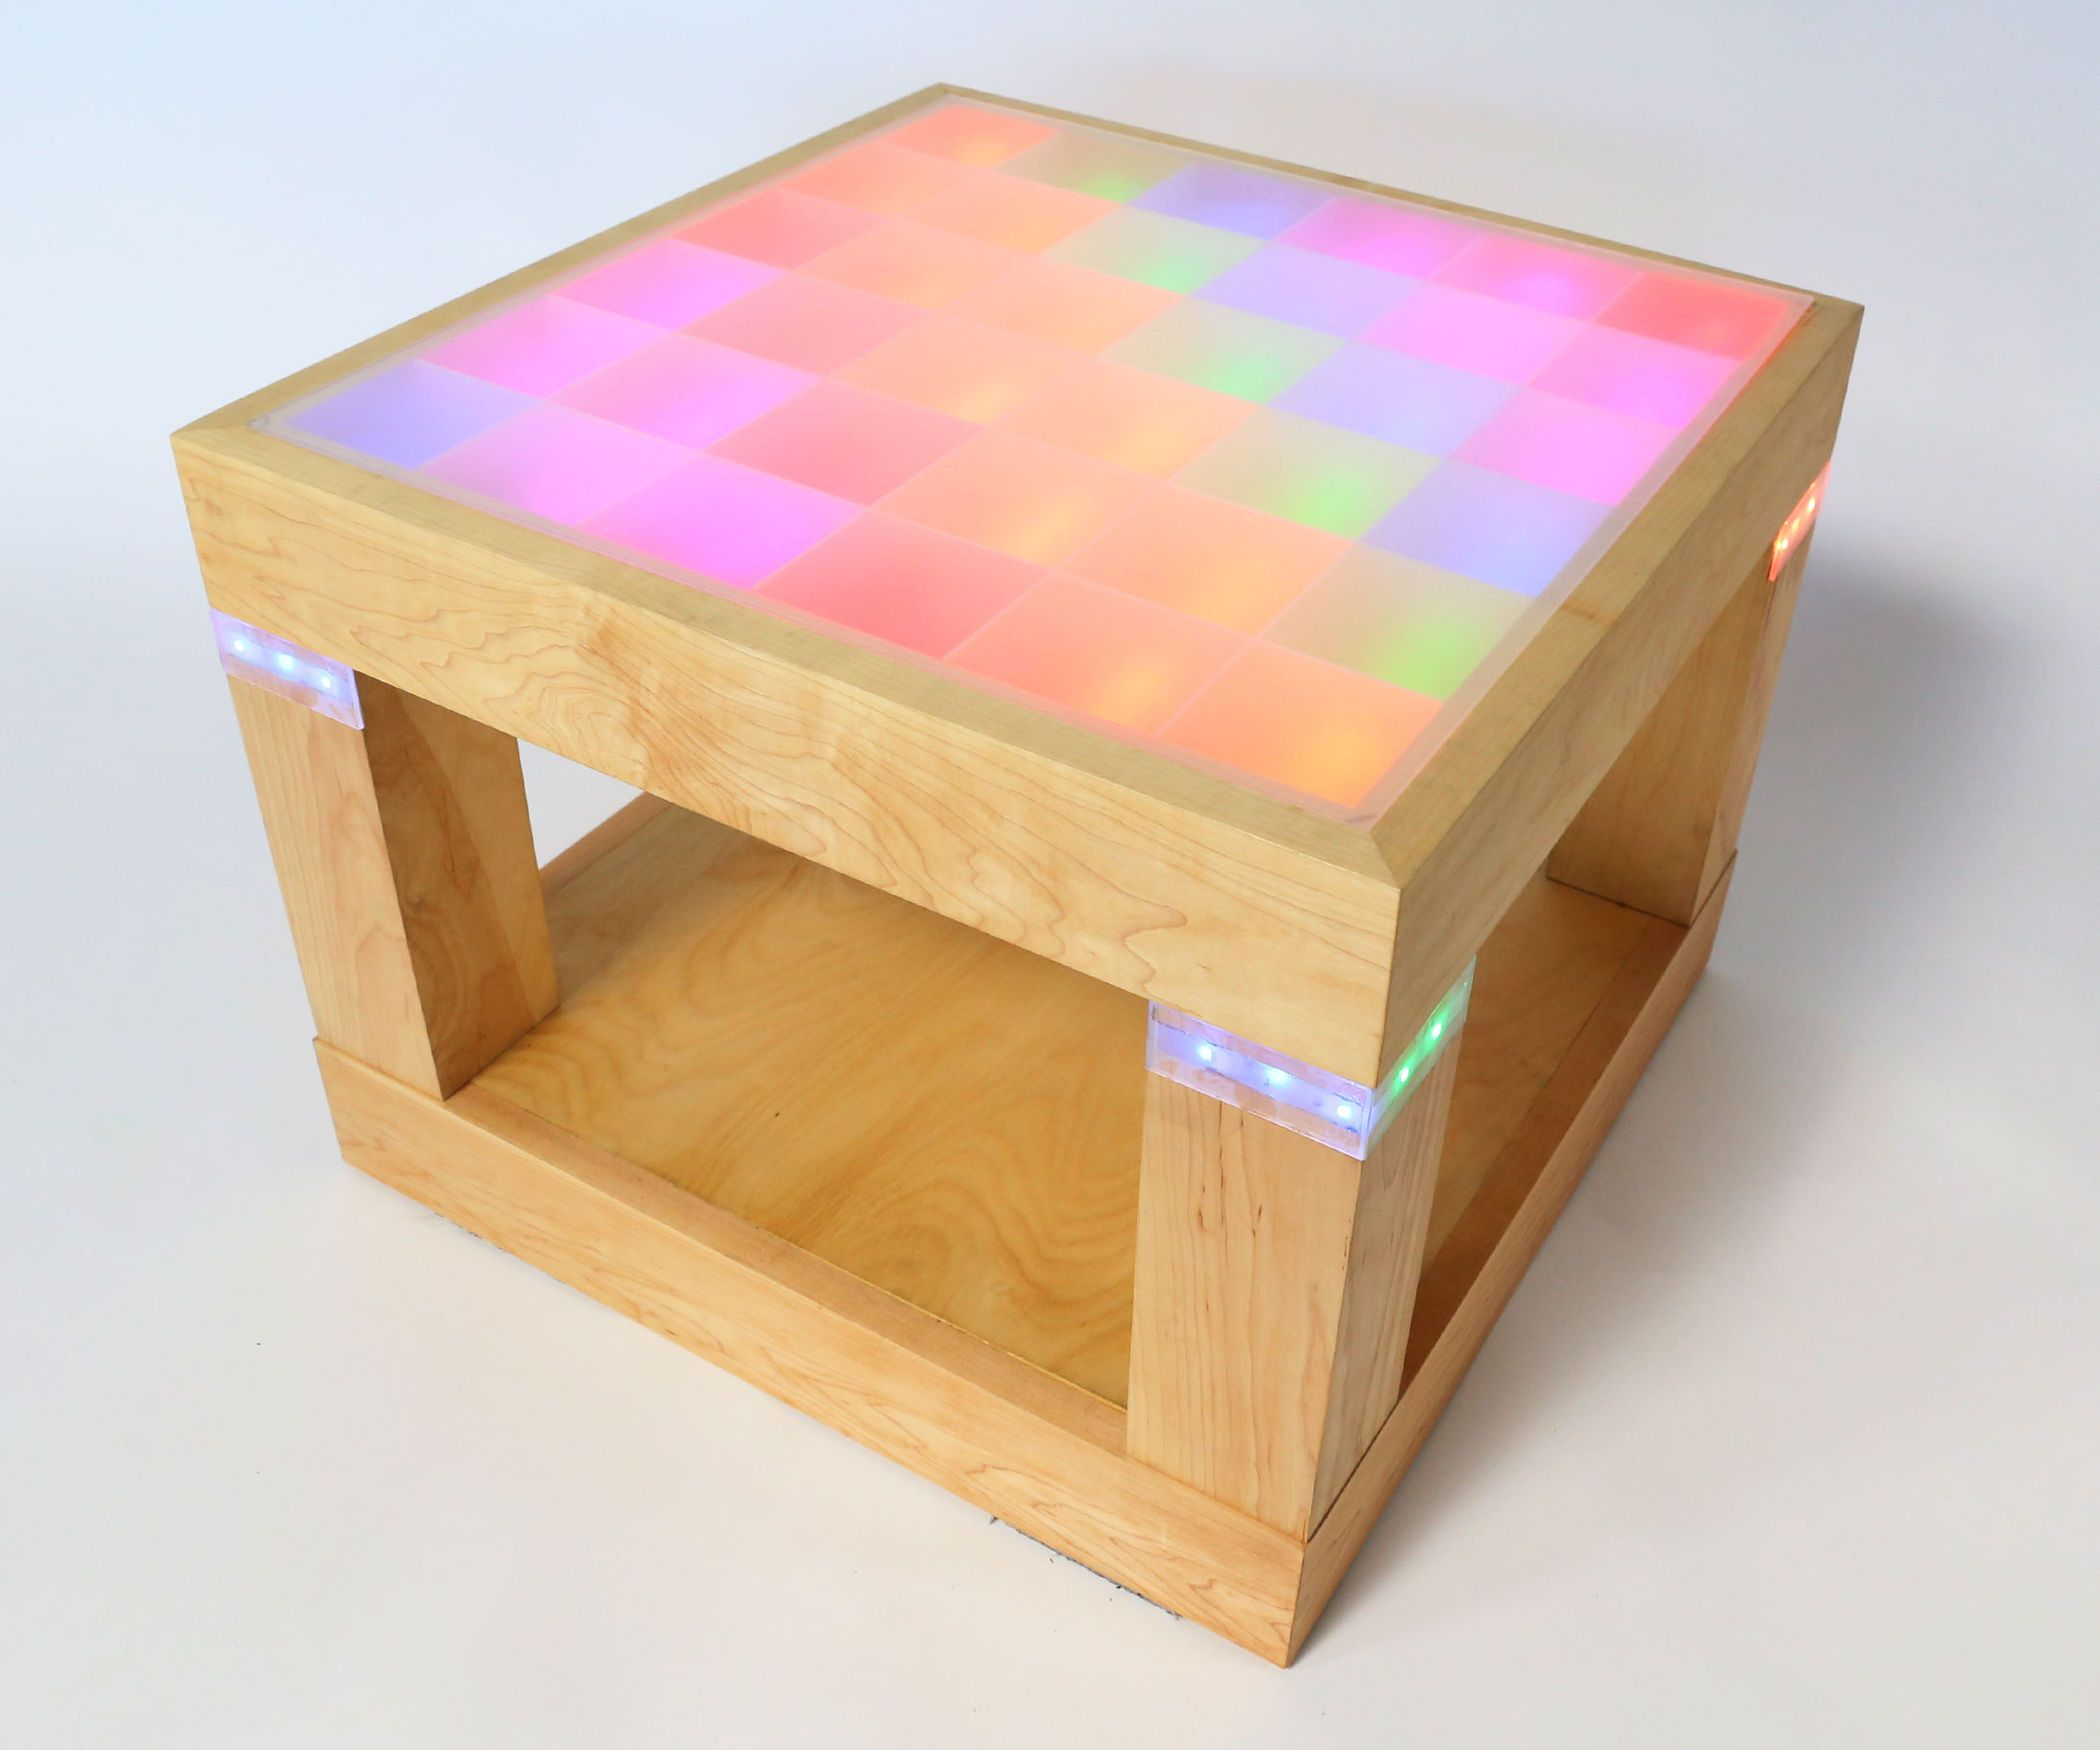 Light Up Disco Table Light Up Led Diy Projects [ 1750 x 2100 Pixel ]